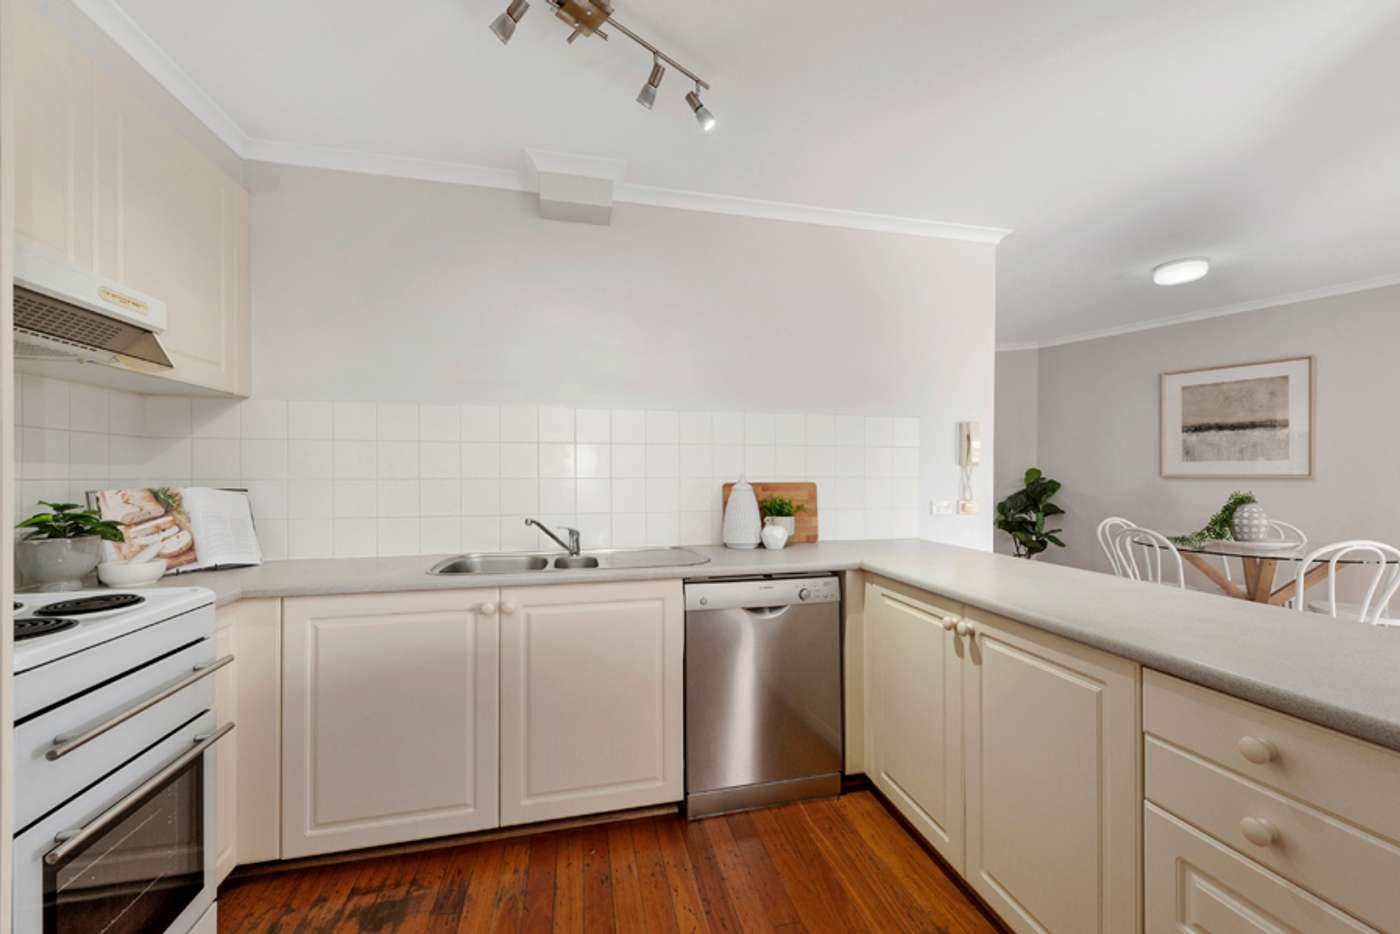 Sixth view of Homely apartment listing, 27/1-3 Thomas Street, Hornsby NSW 2077